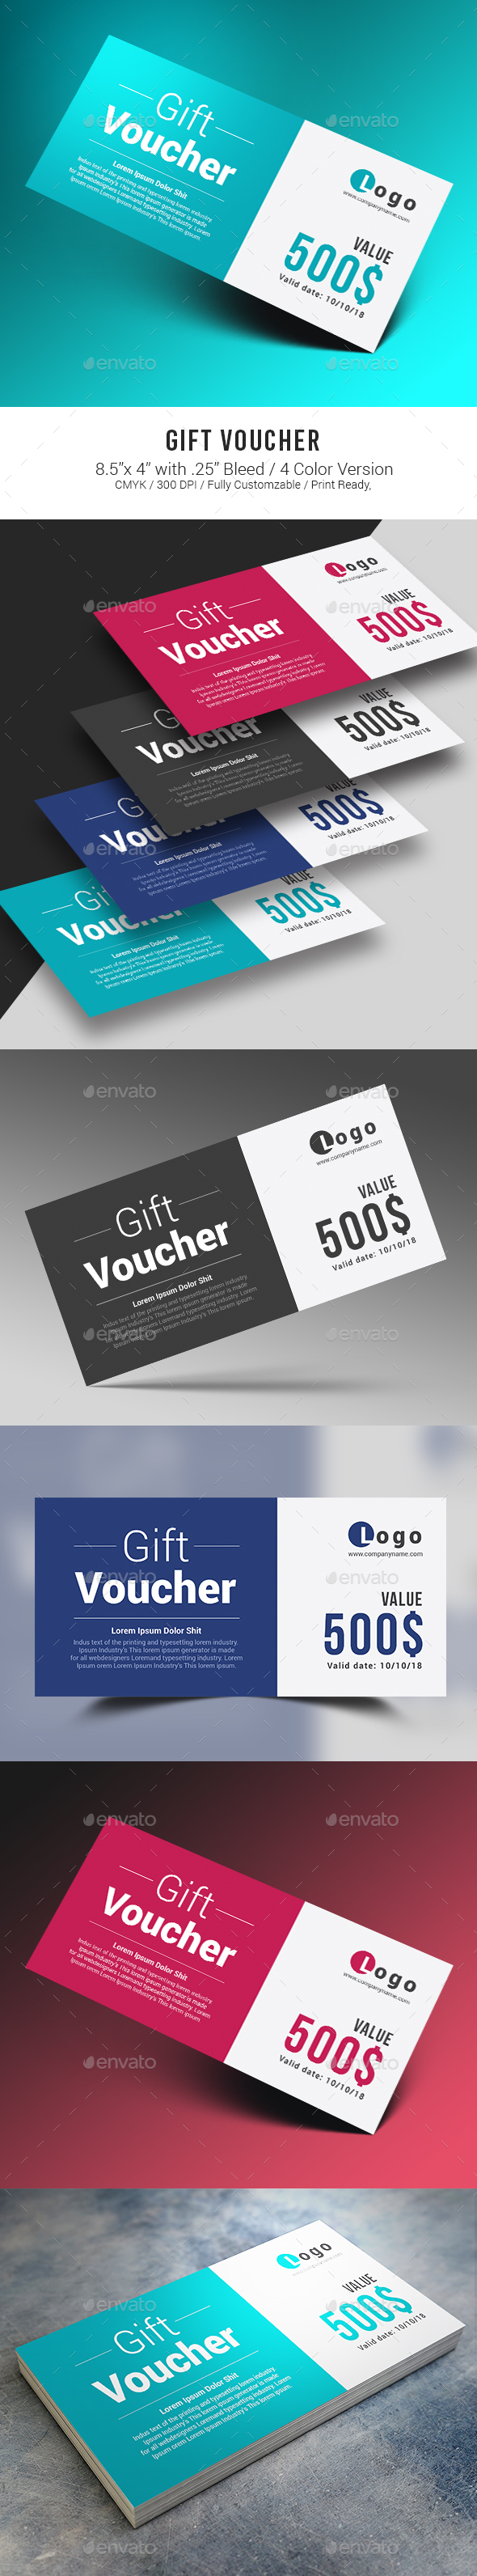 Gift Voucher Psd Templates And Template